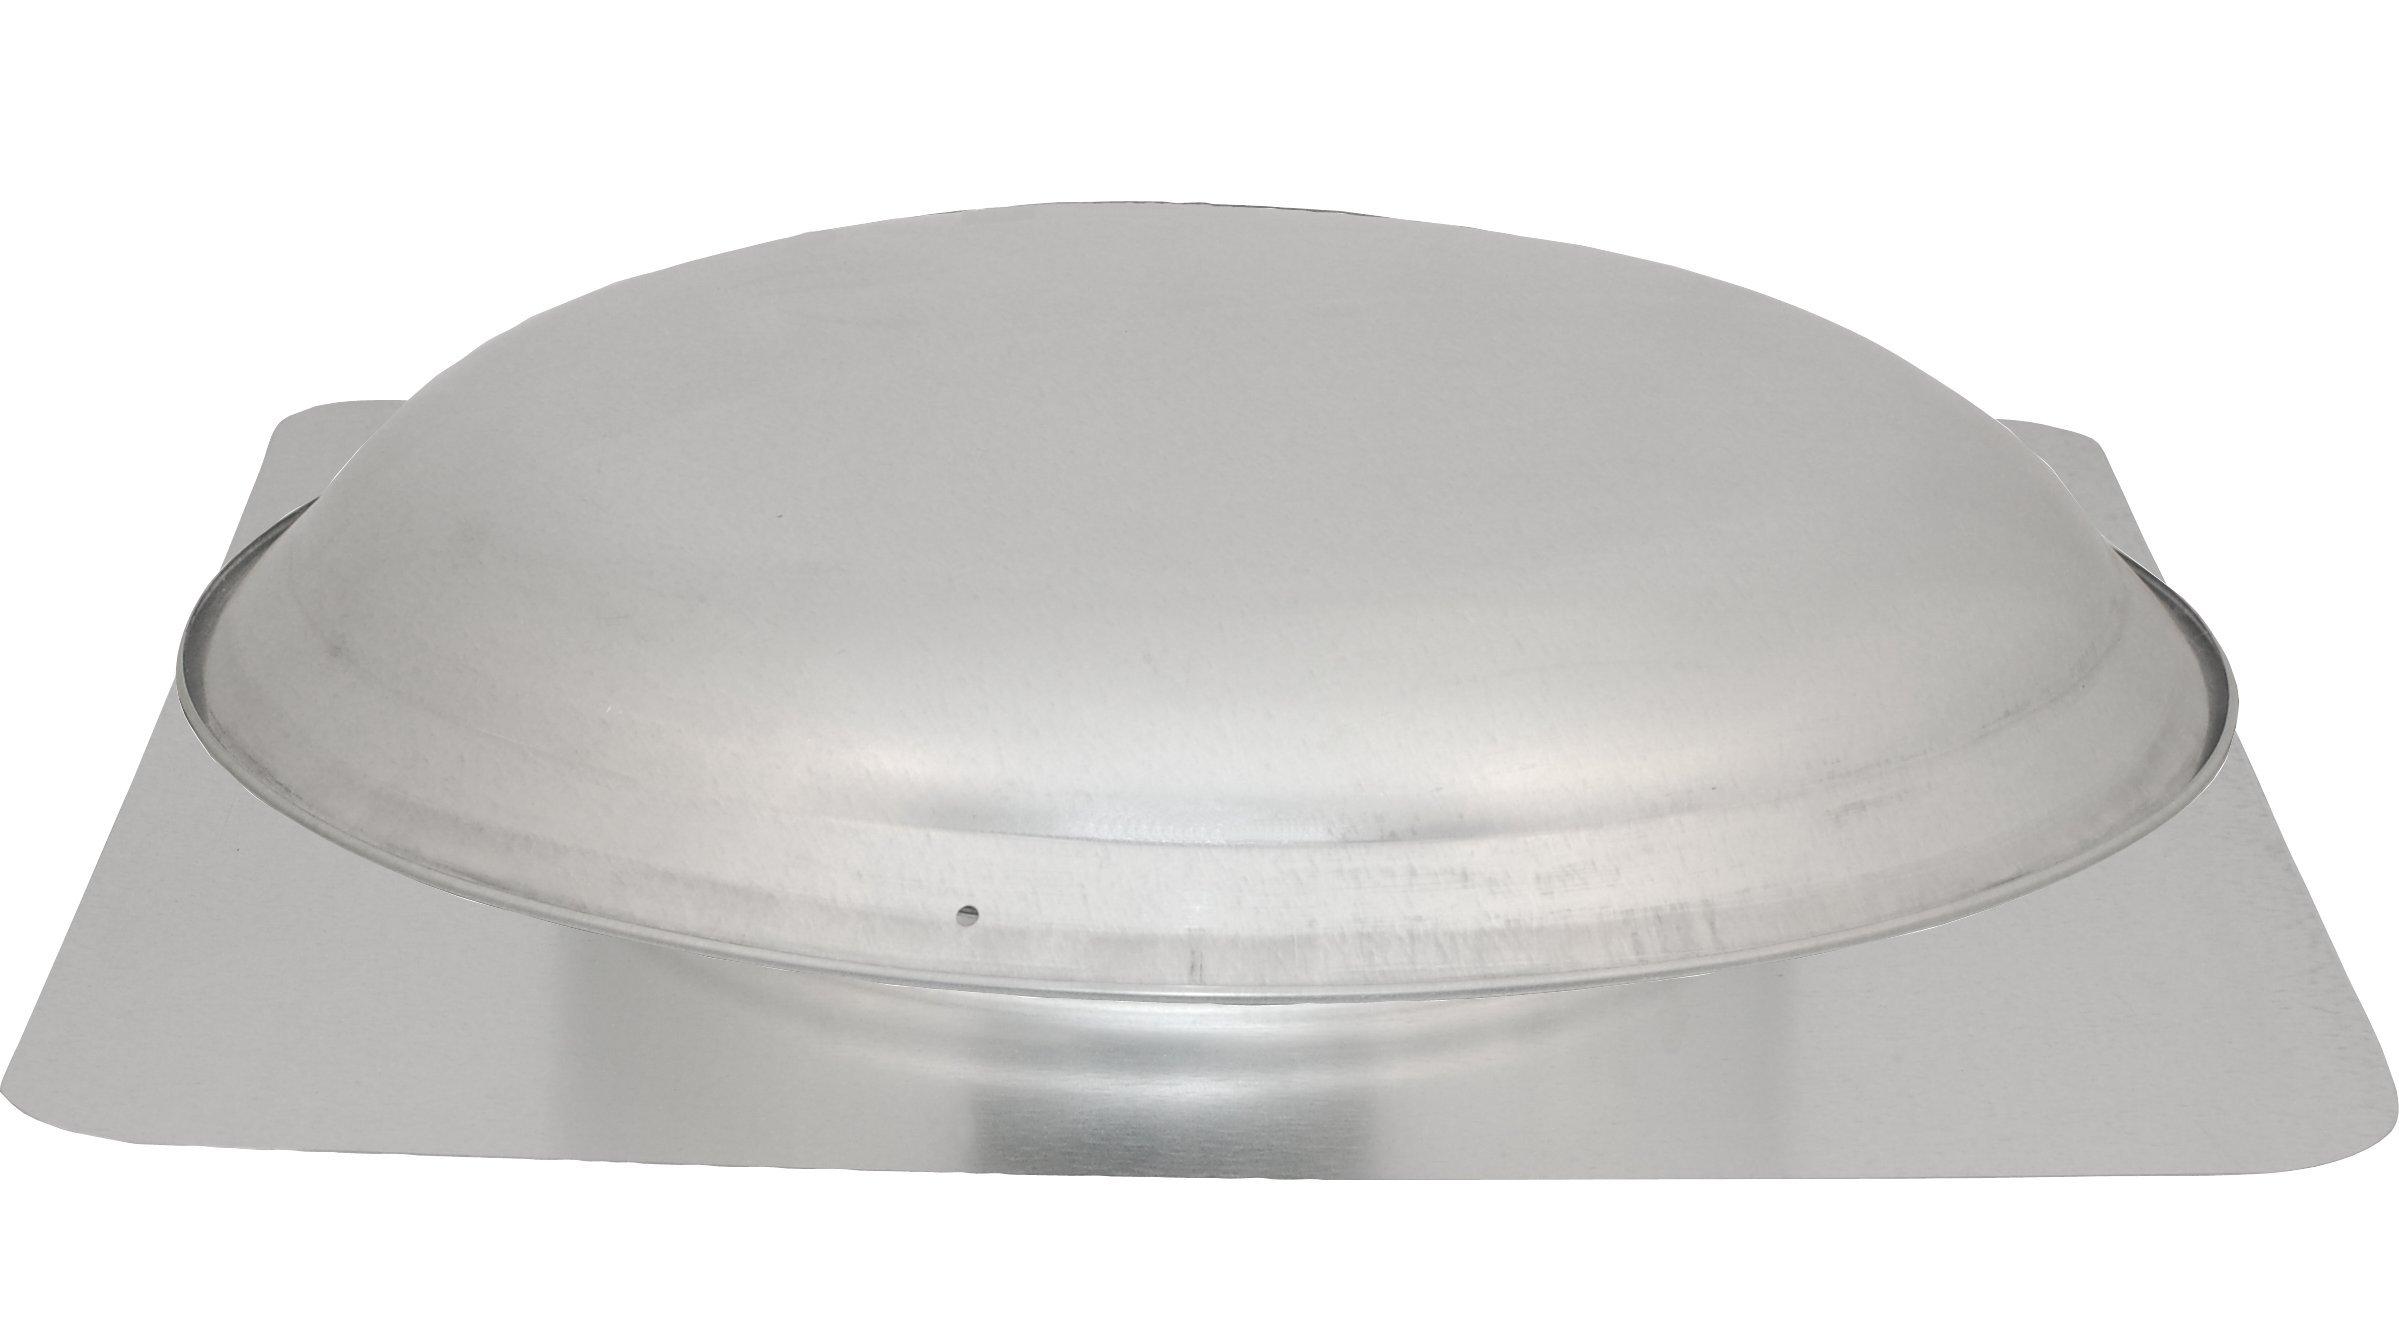 Cool Attic CX1000AM Power Attic Roof Mount Ventilator with 3.4-Amp 60-Hz Motor and Steel Flange, Galvanized Steel Dome